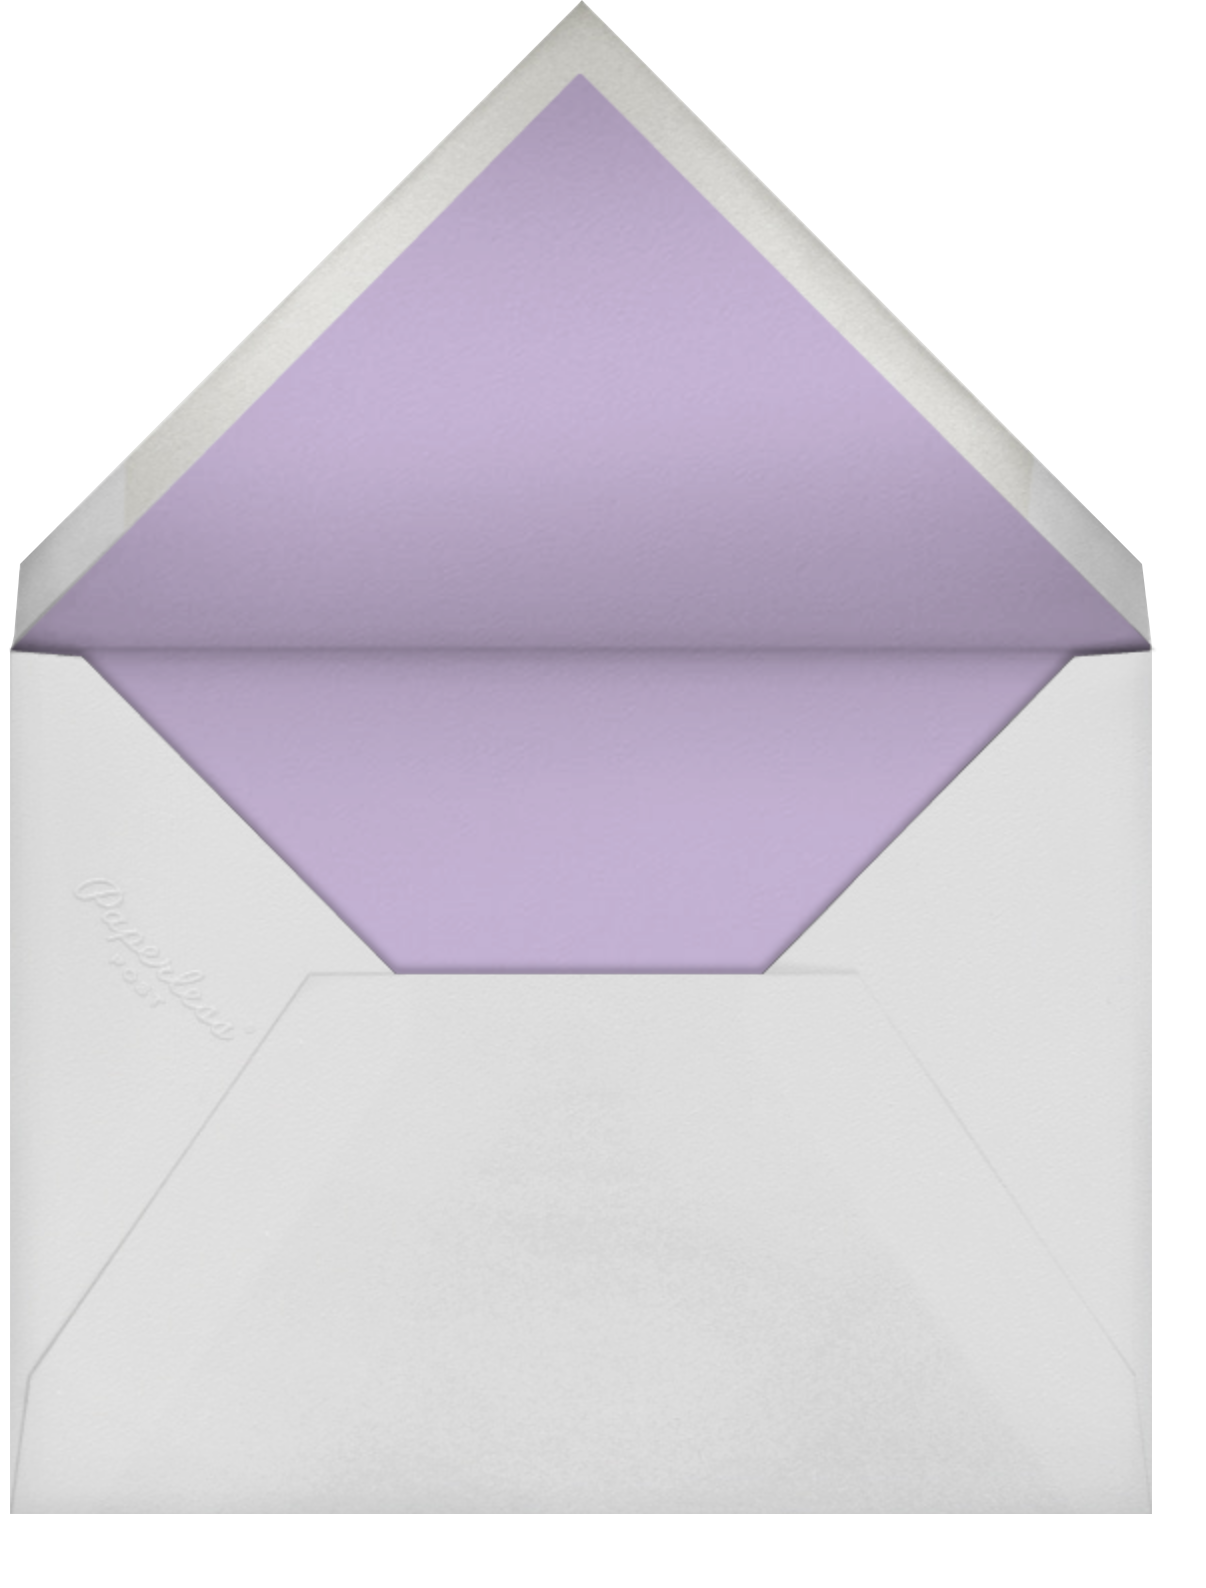 Clover and Over - Lilac - kate spade new york - Adult birthday - envelope back